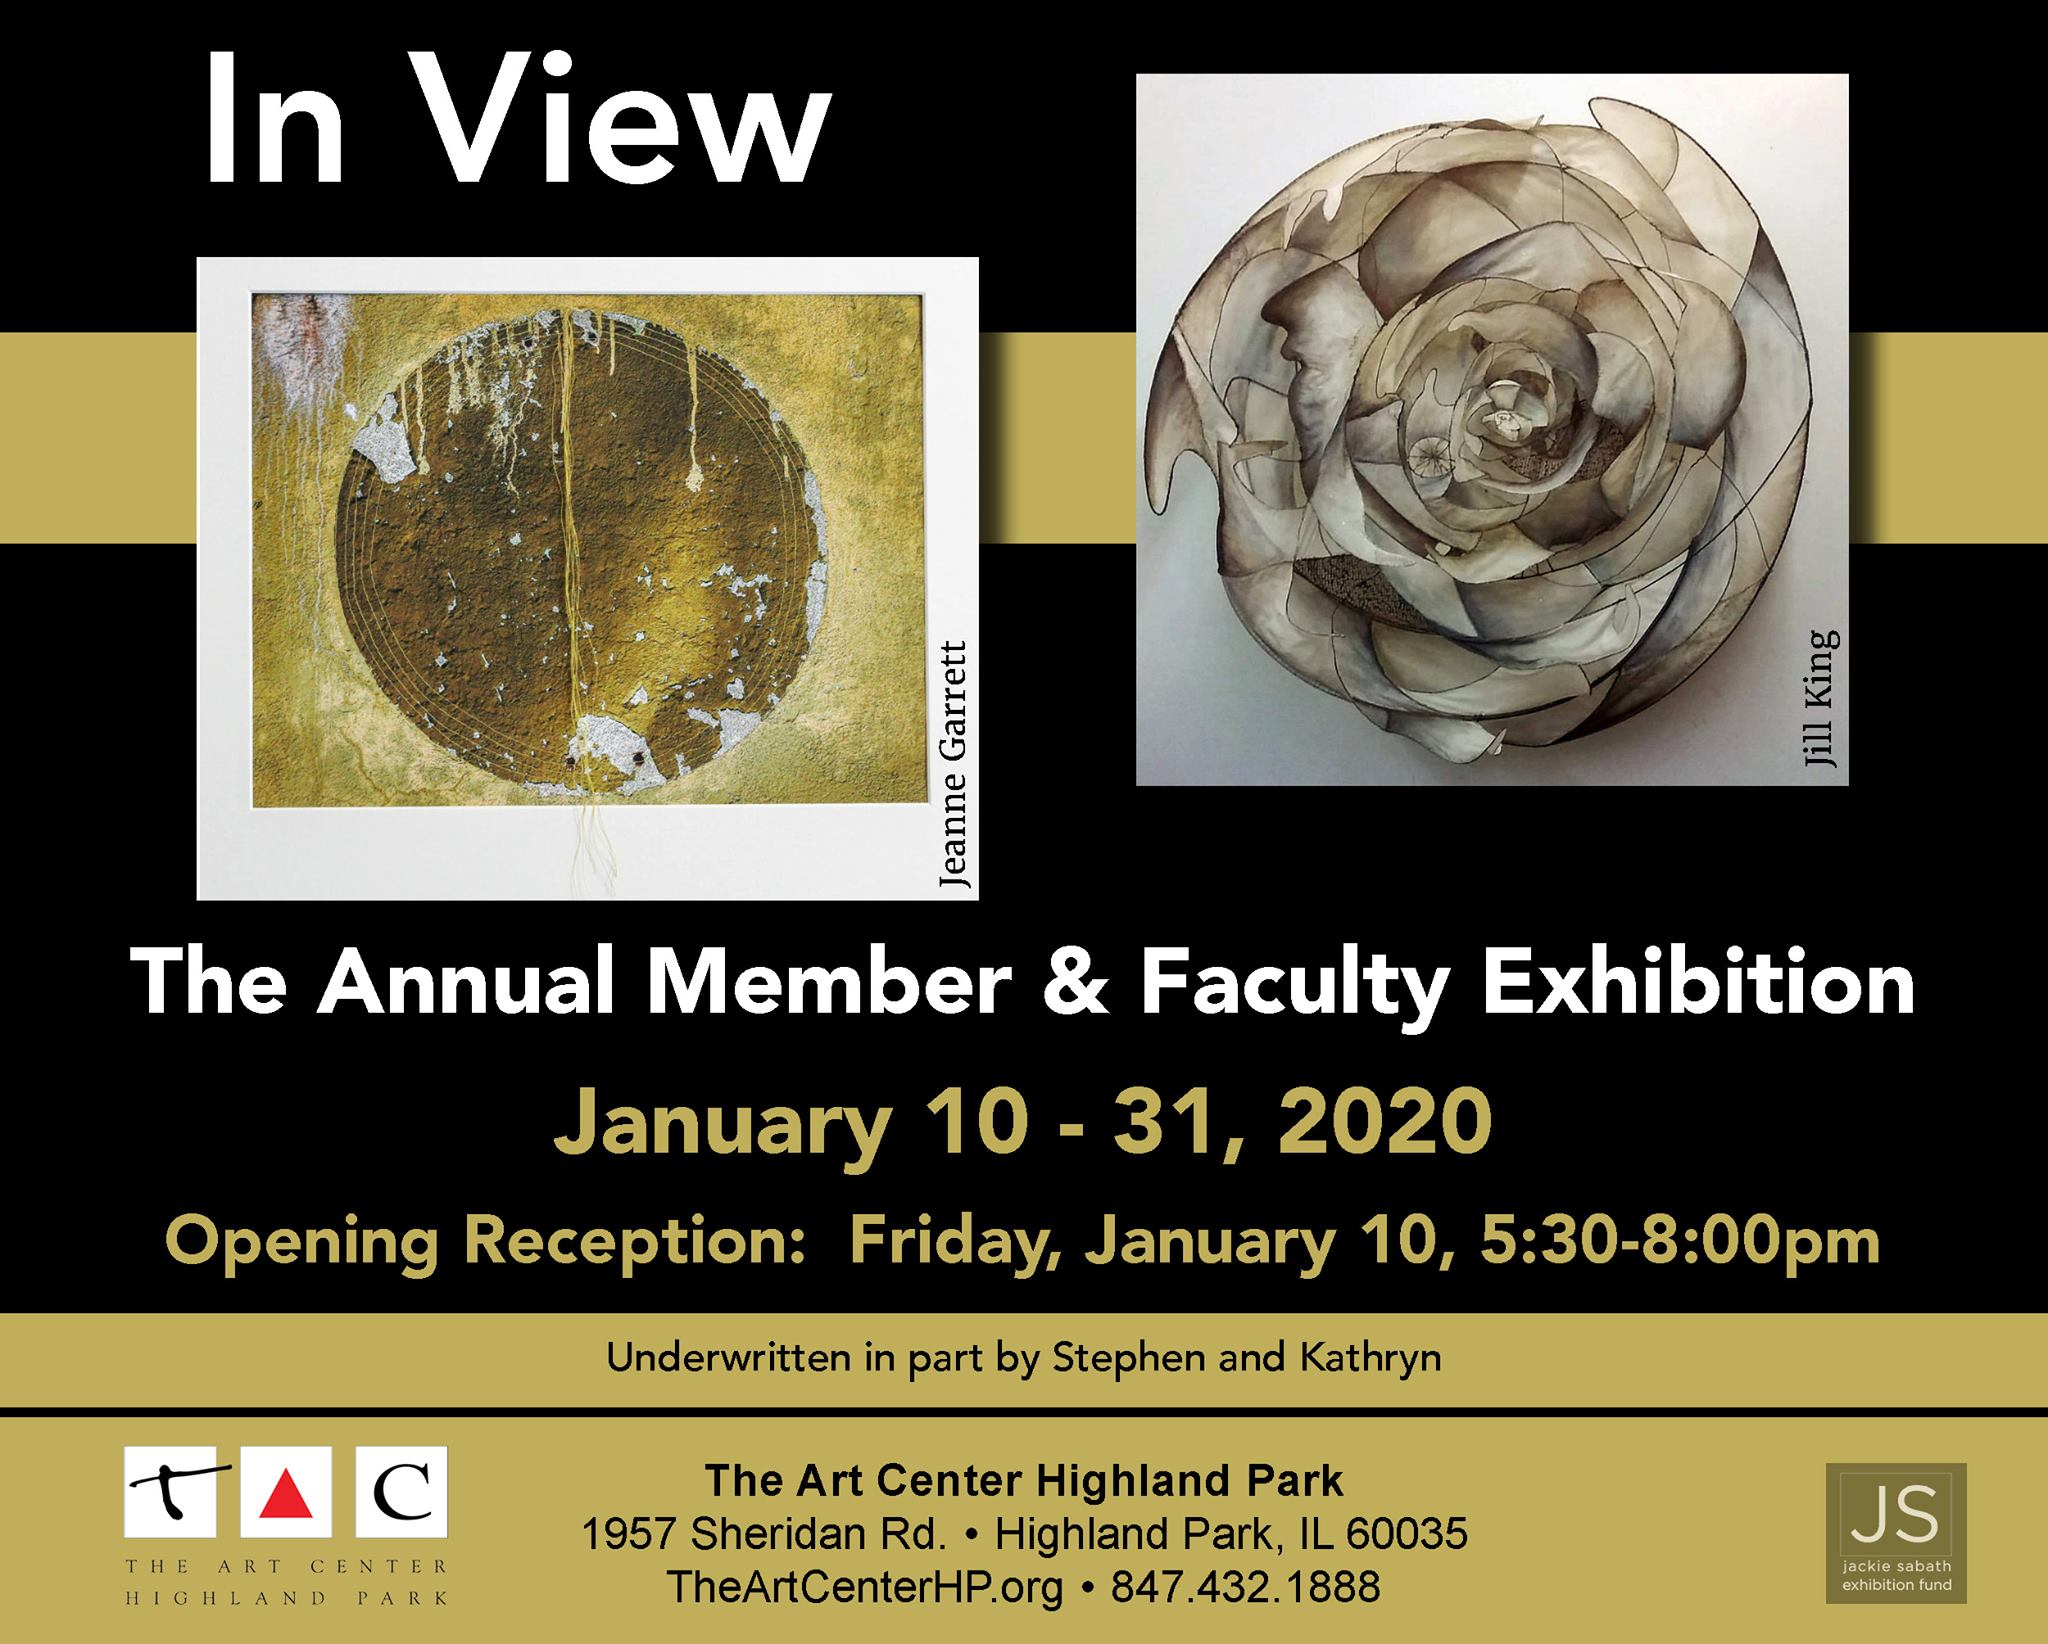 IN View TACHP Annual Member/Faculty Exhibition in Highland Park